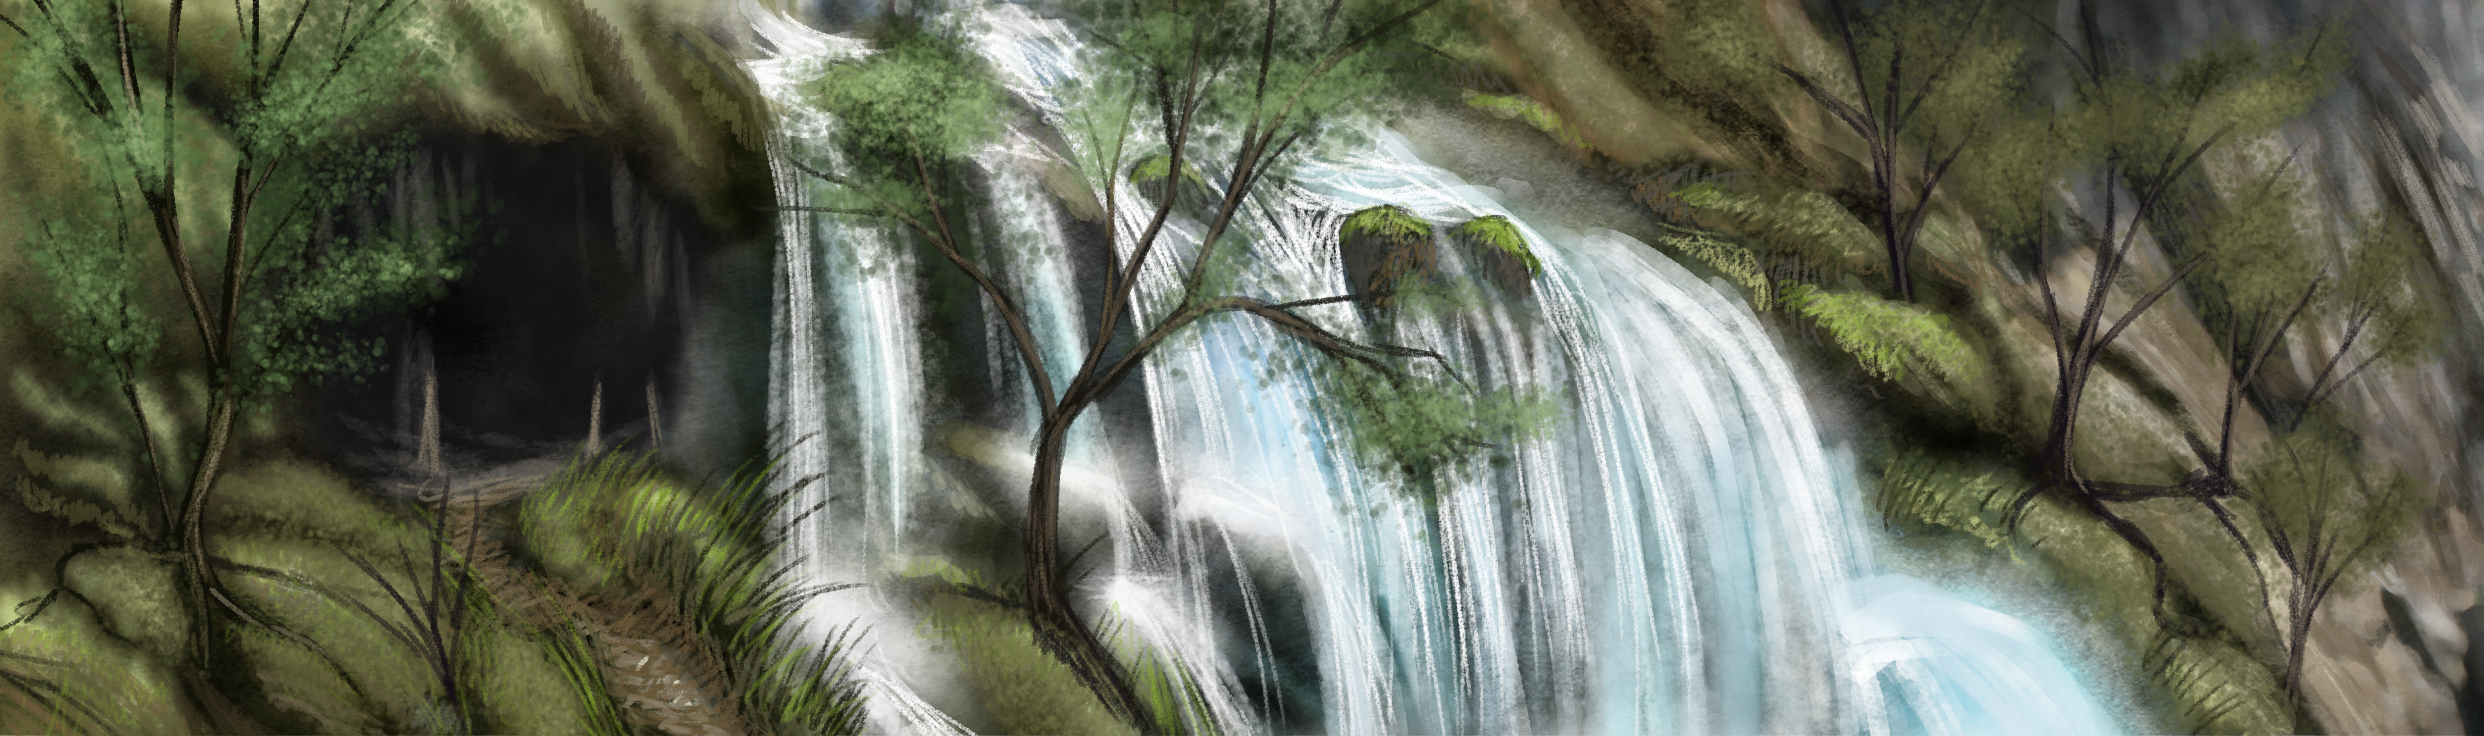 Waterfall, by Amanda Spaid